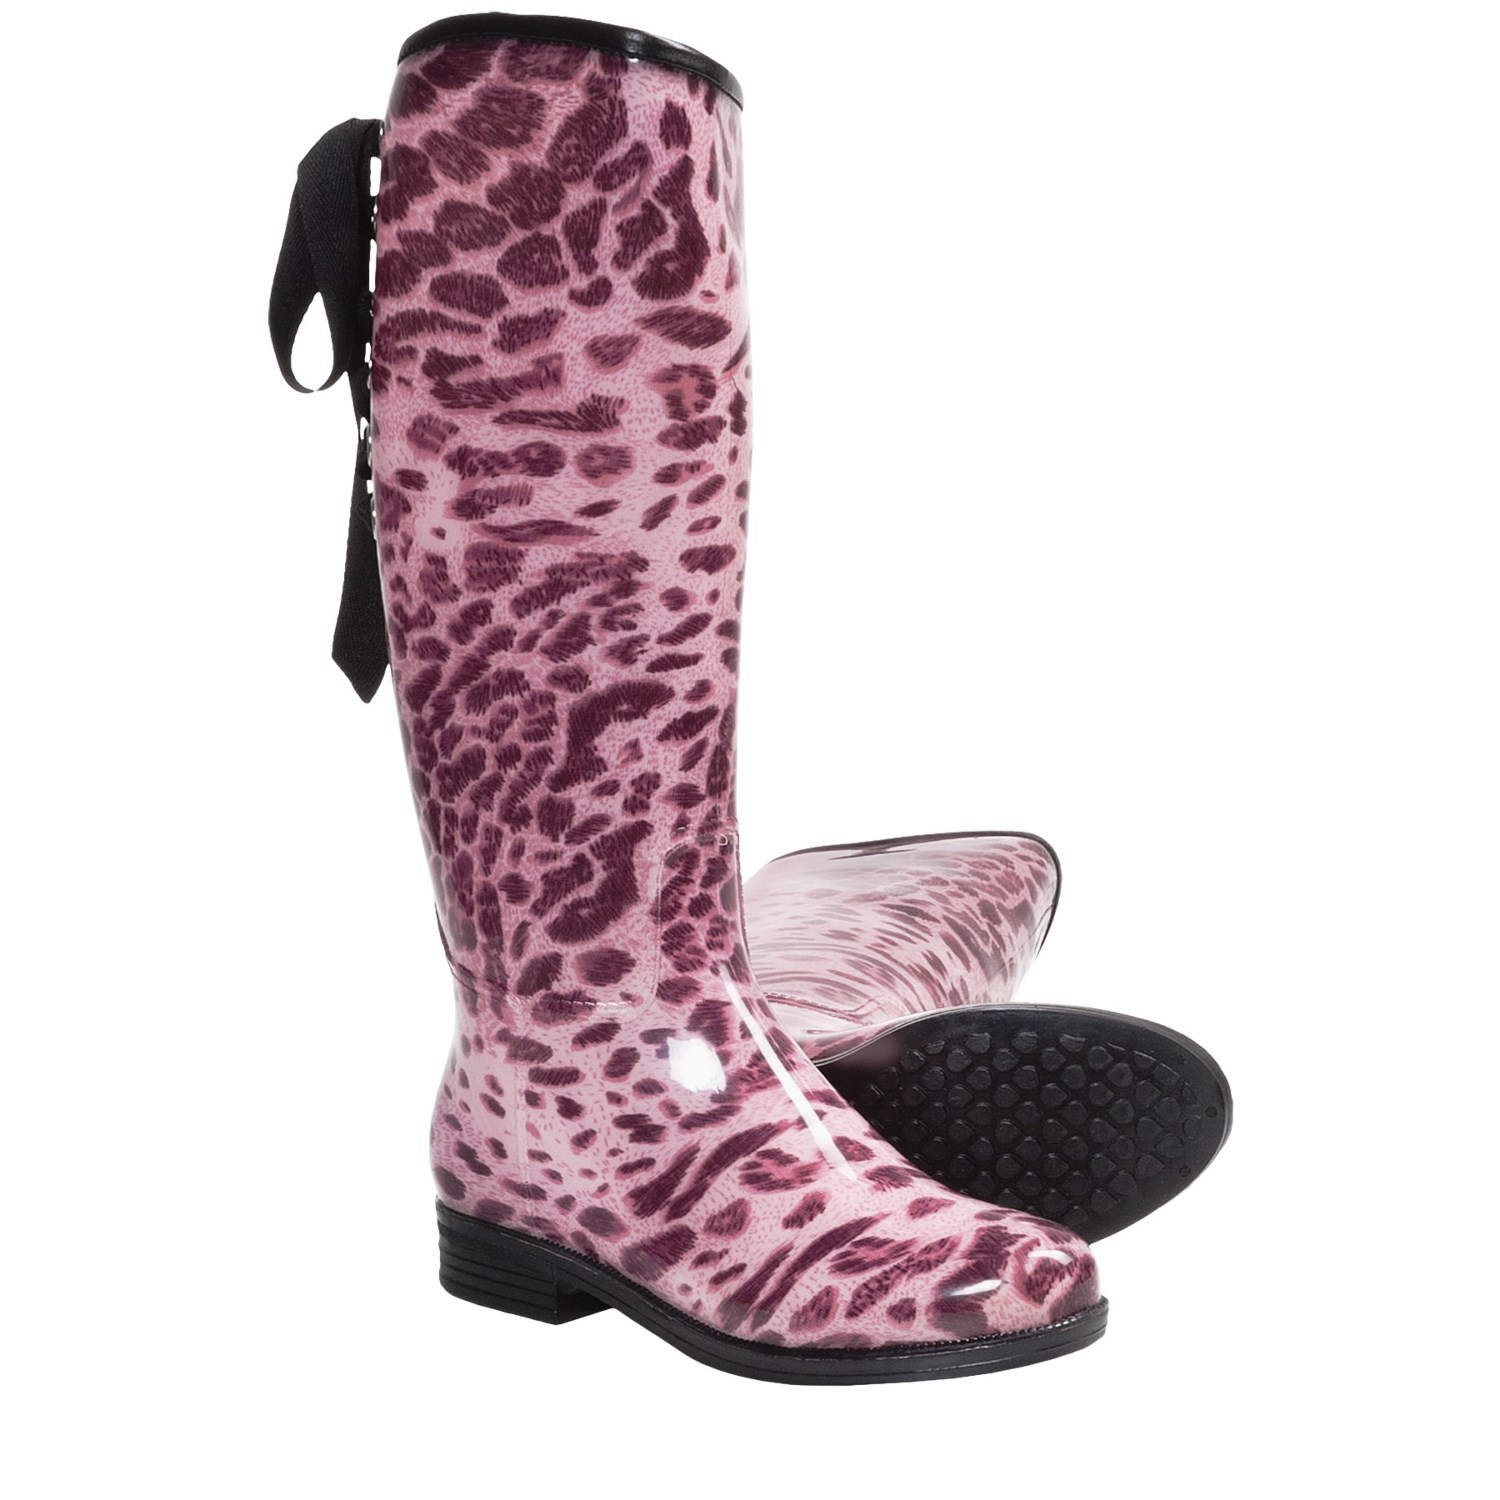 Excellent Super Cute Waterproof Ankle Rain Boots For Women! 9 Fun Patterns To Choose From And Theyre A Great Deal Norty  Ladies Ankle Rain Boots  For Women  Waterproof Rainboot For Winter Spring And Garden  Warm And